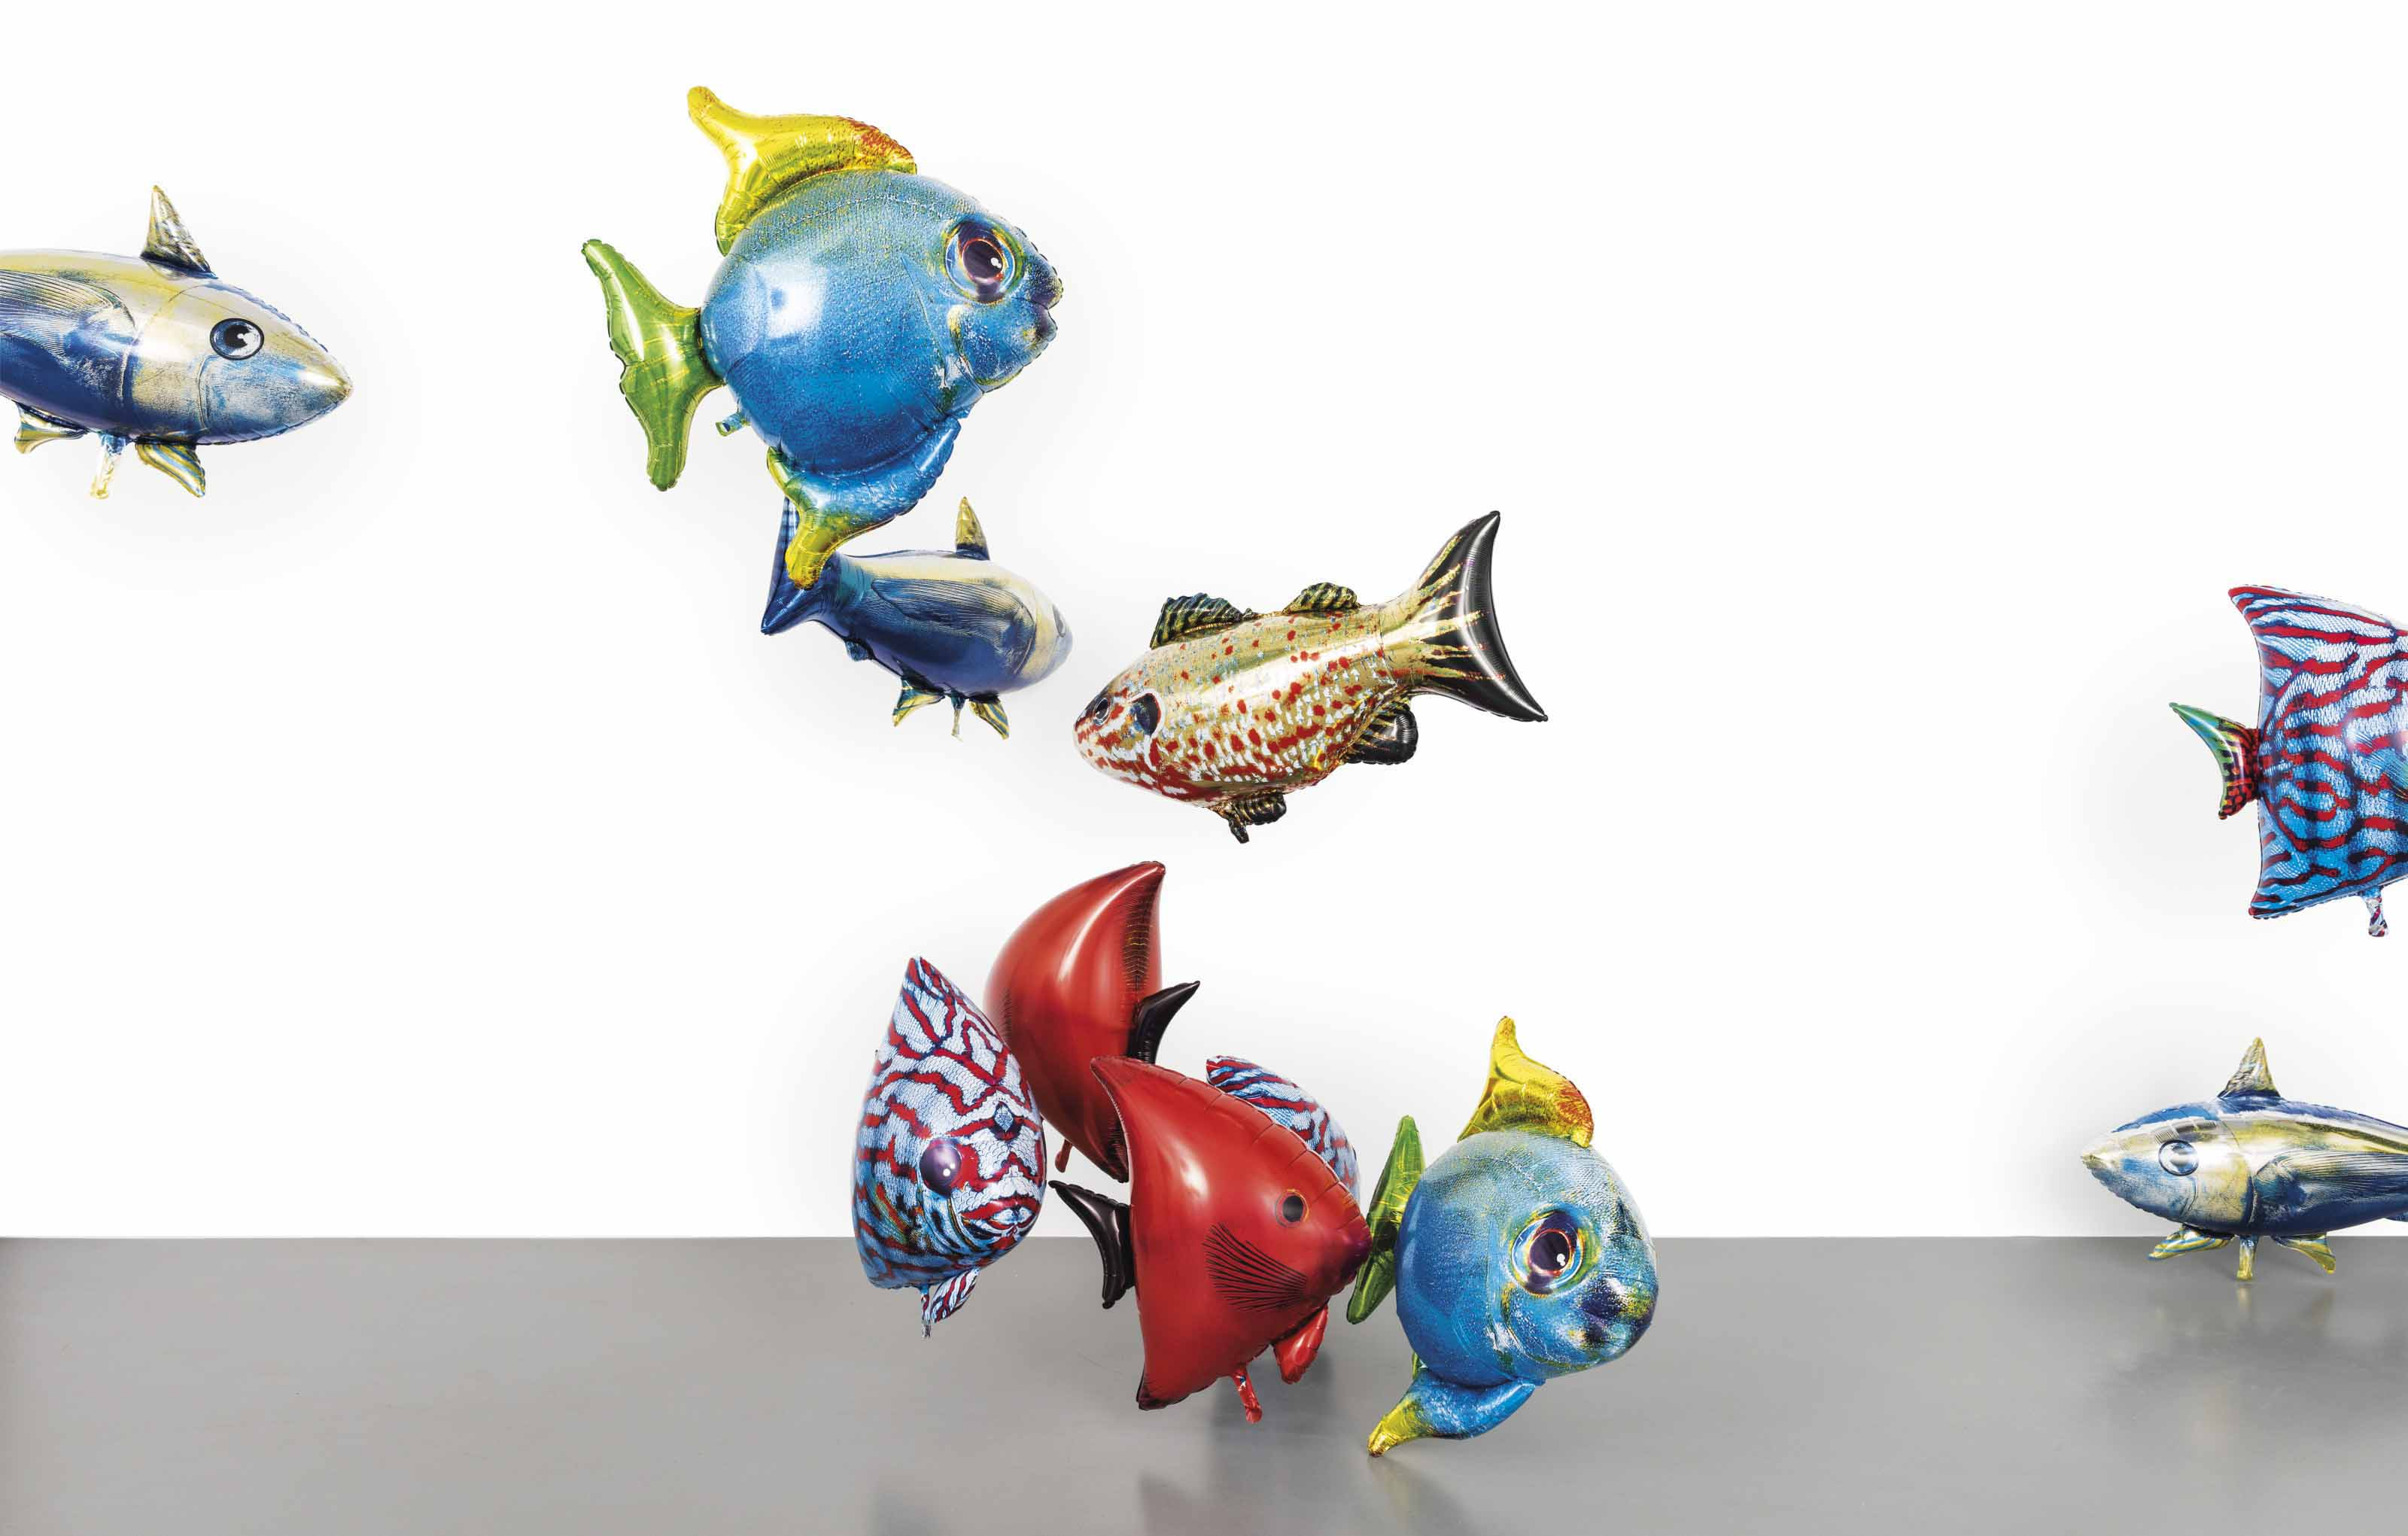 Philippe parreno b 1964 my room is another fish bowl for The fish 95 9